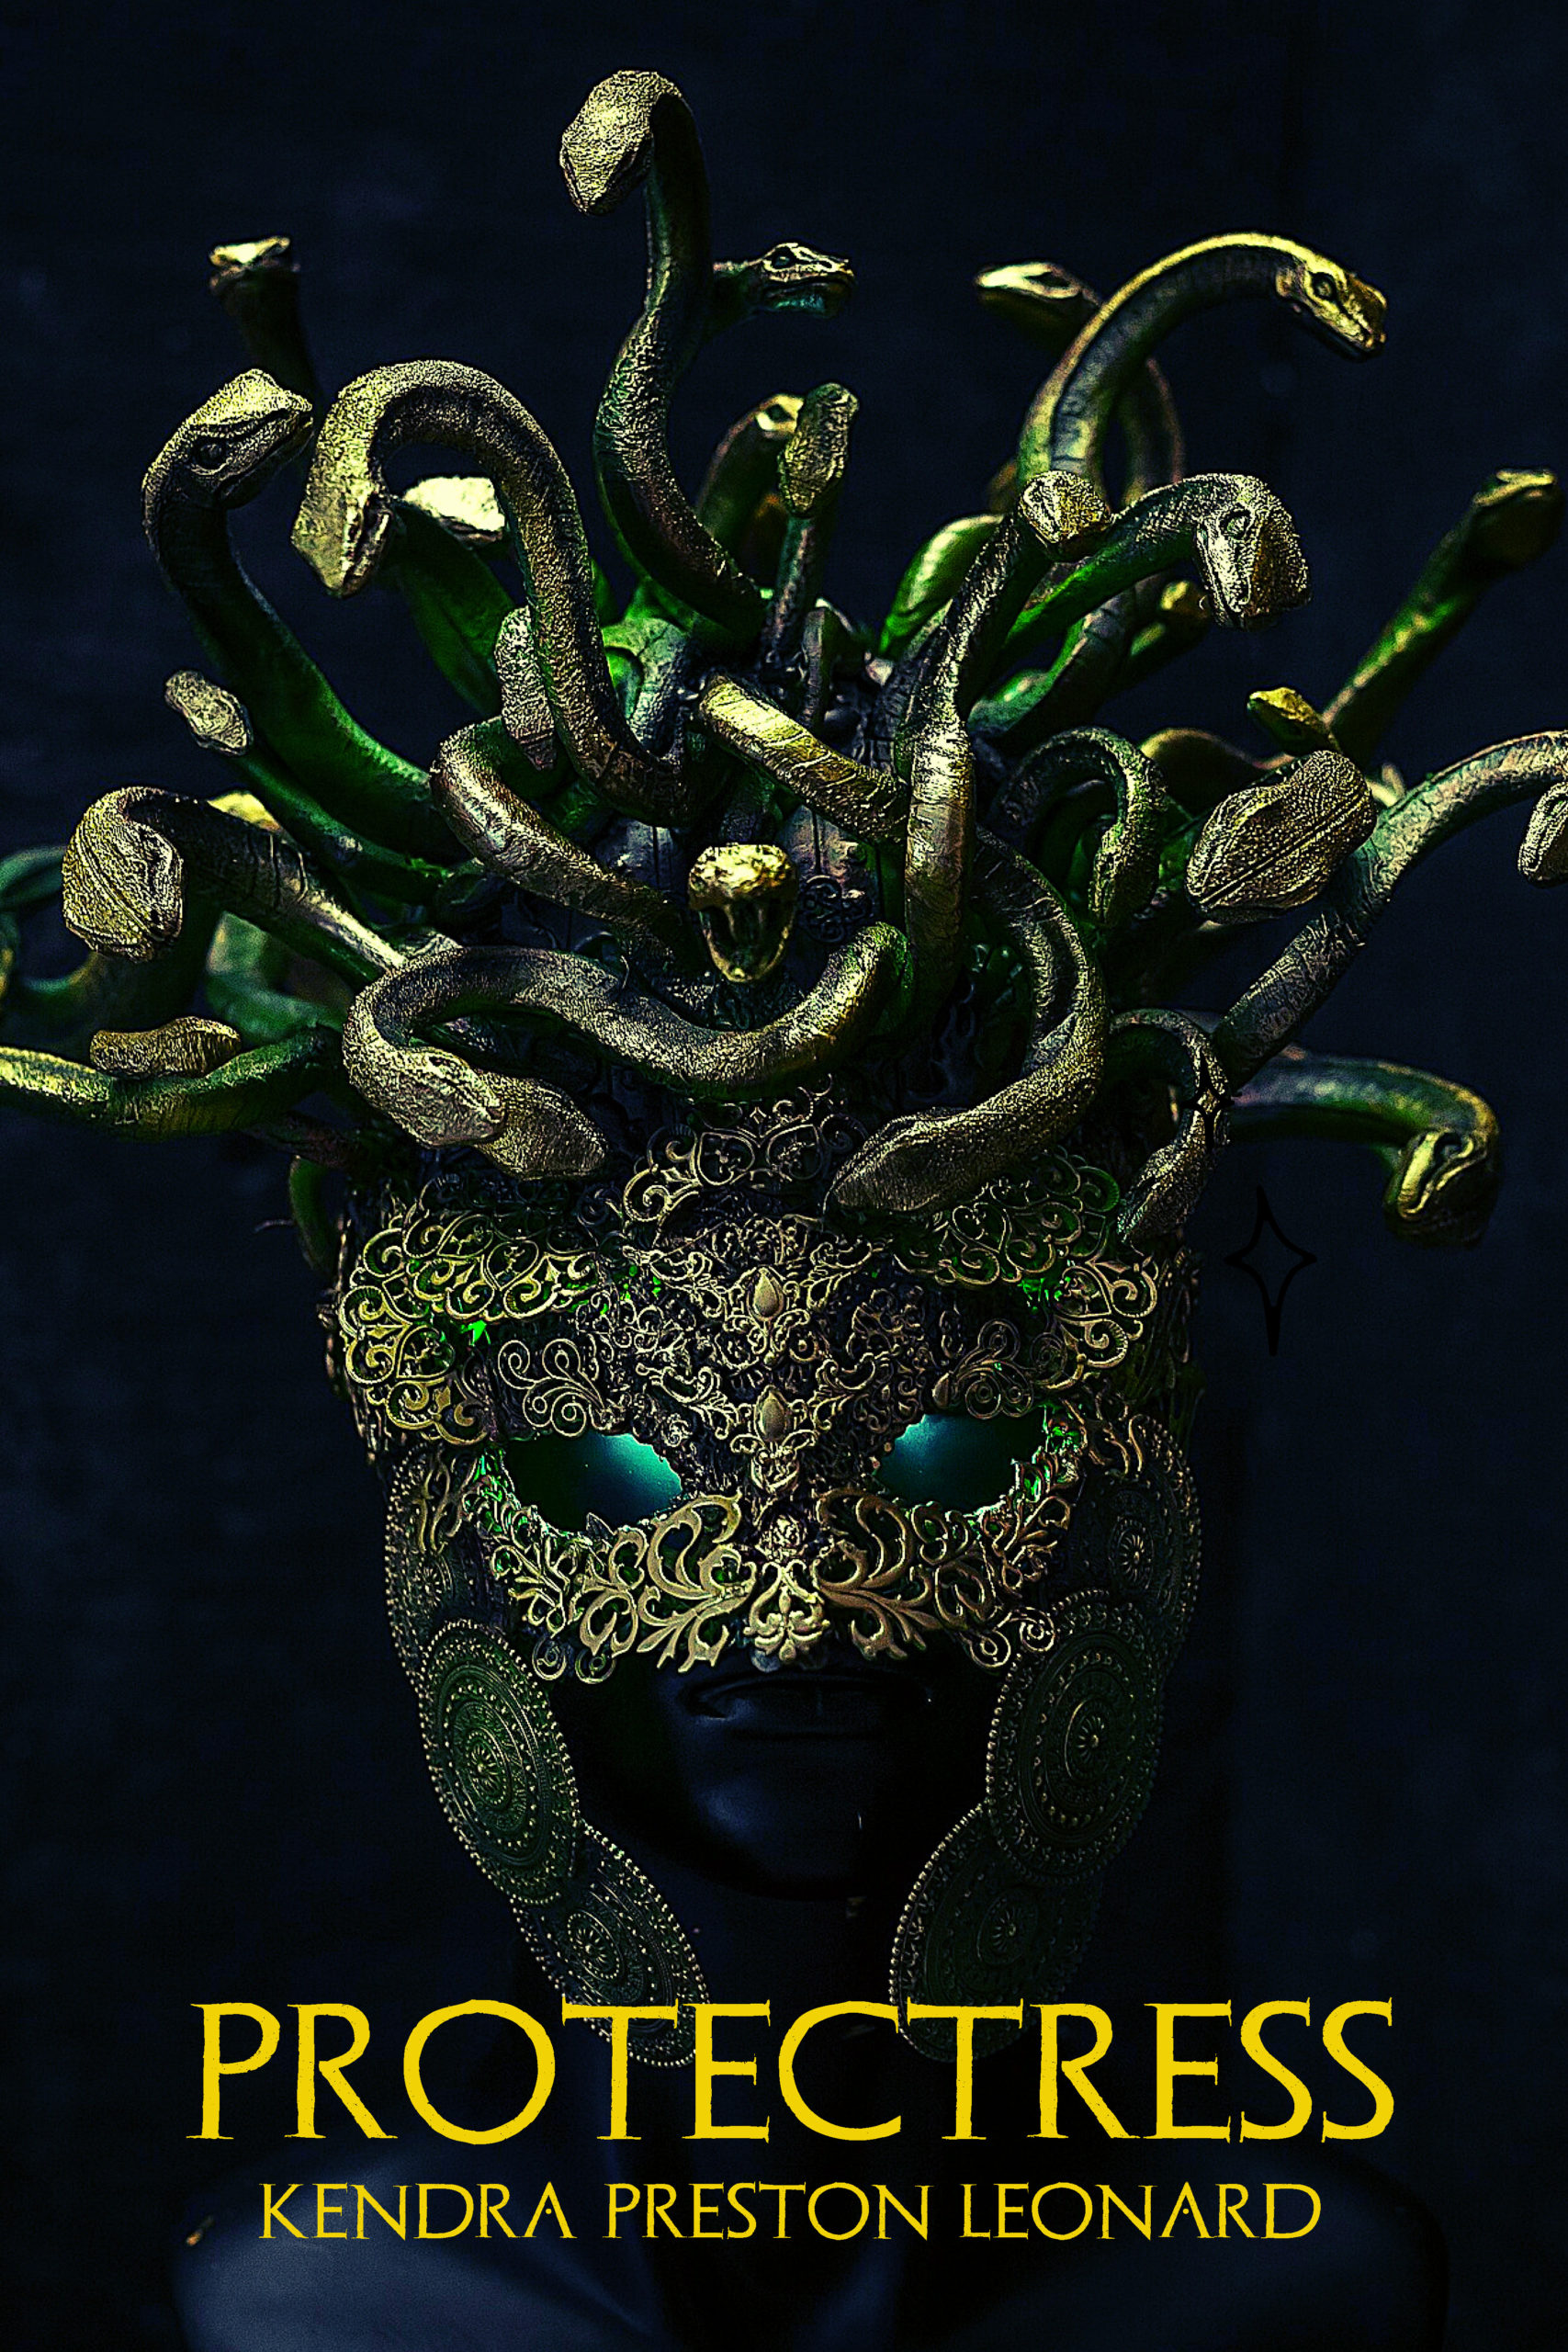 """Book cover image showing a dark-skinned woman wearing a gold gilt helmet with gold and green snakes coming out of the top. The text reads: Protectress. Kendra Preston Leonard."""""""